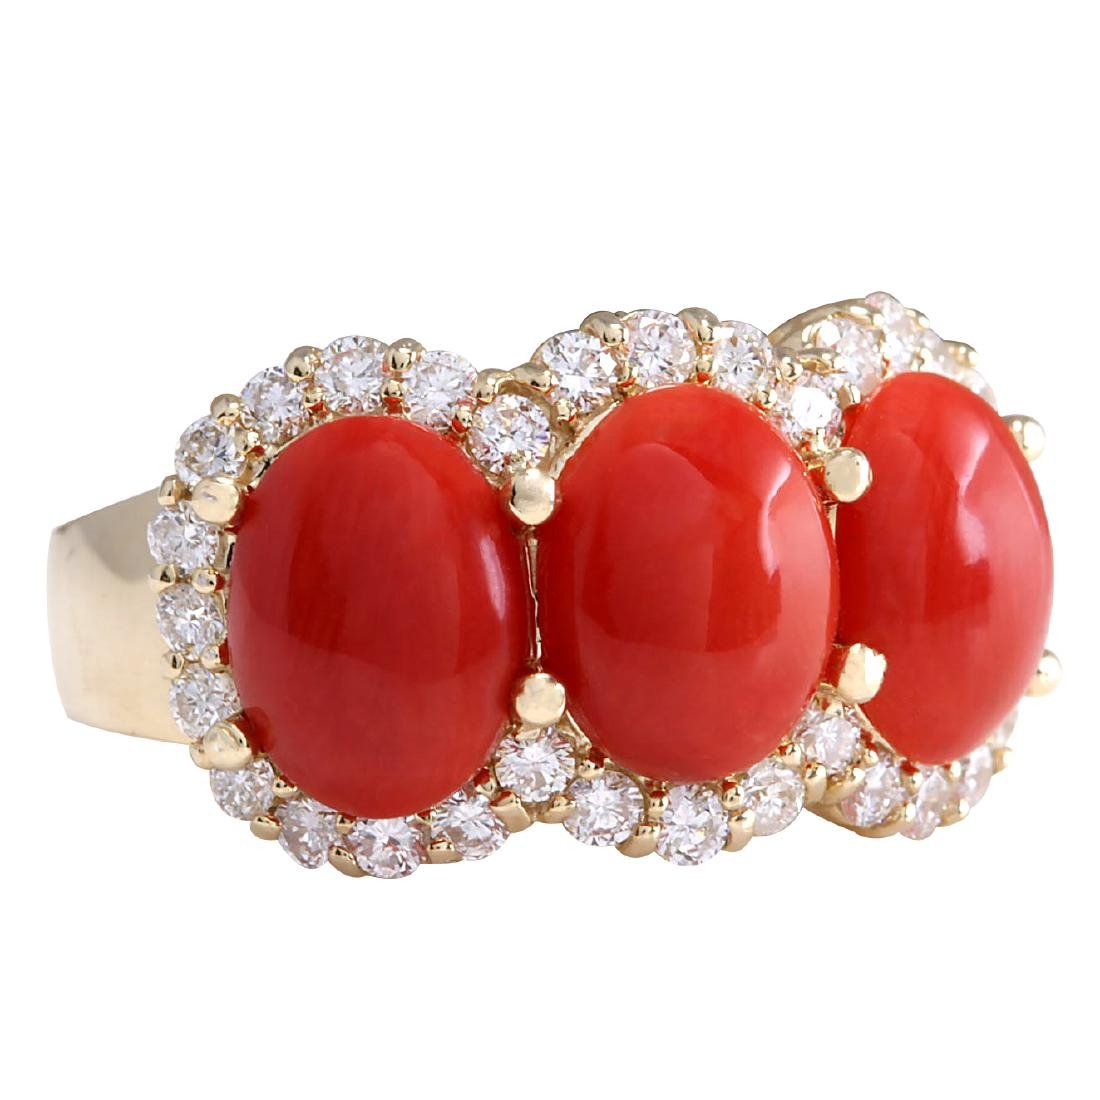 5.10CTW Natural Red Coral And Diamond Ring 18K Solid - 2